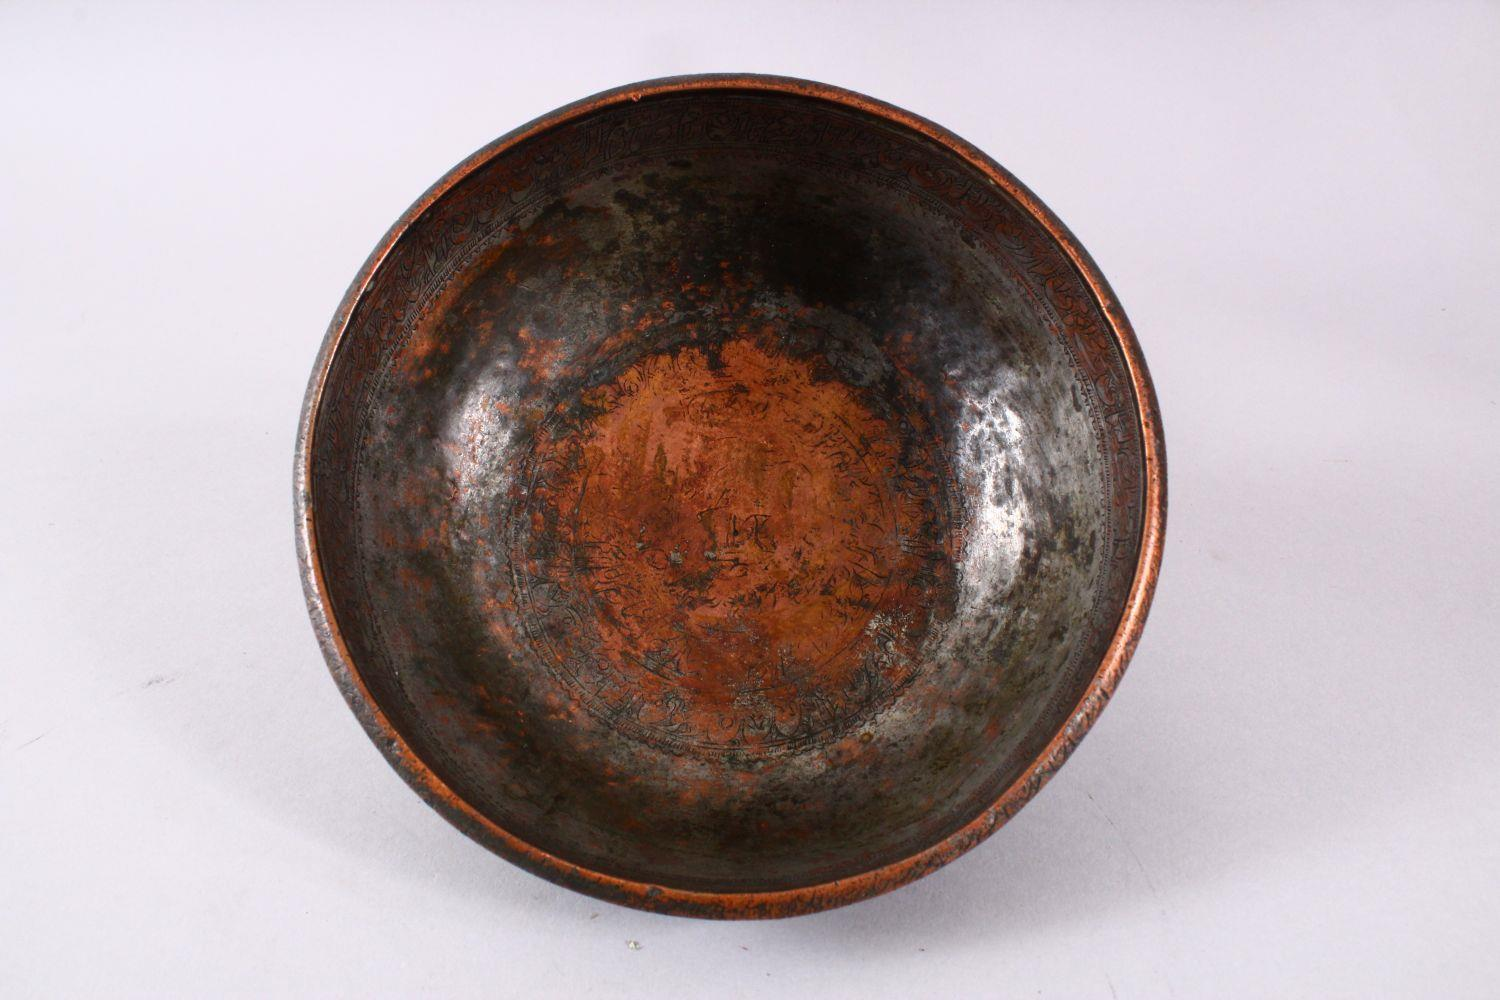 A UNUSUAL ISLAMIC TINNED HAMMERED COPPER CALLIGRAPHIC BOWL, decorated with interior & exterior bands - Image 8 of 8